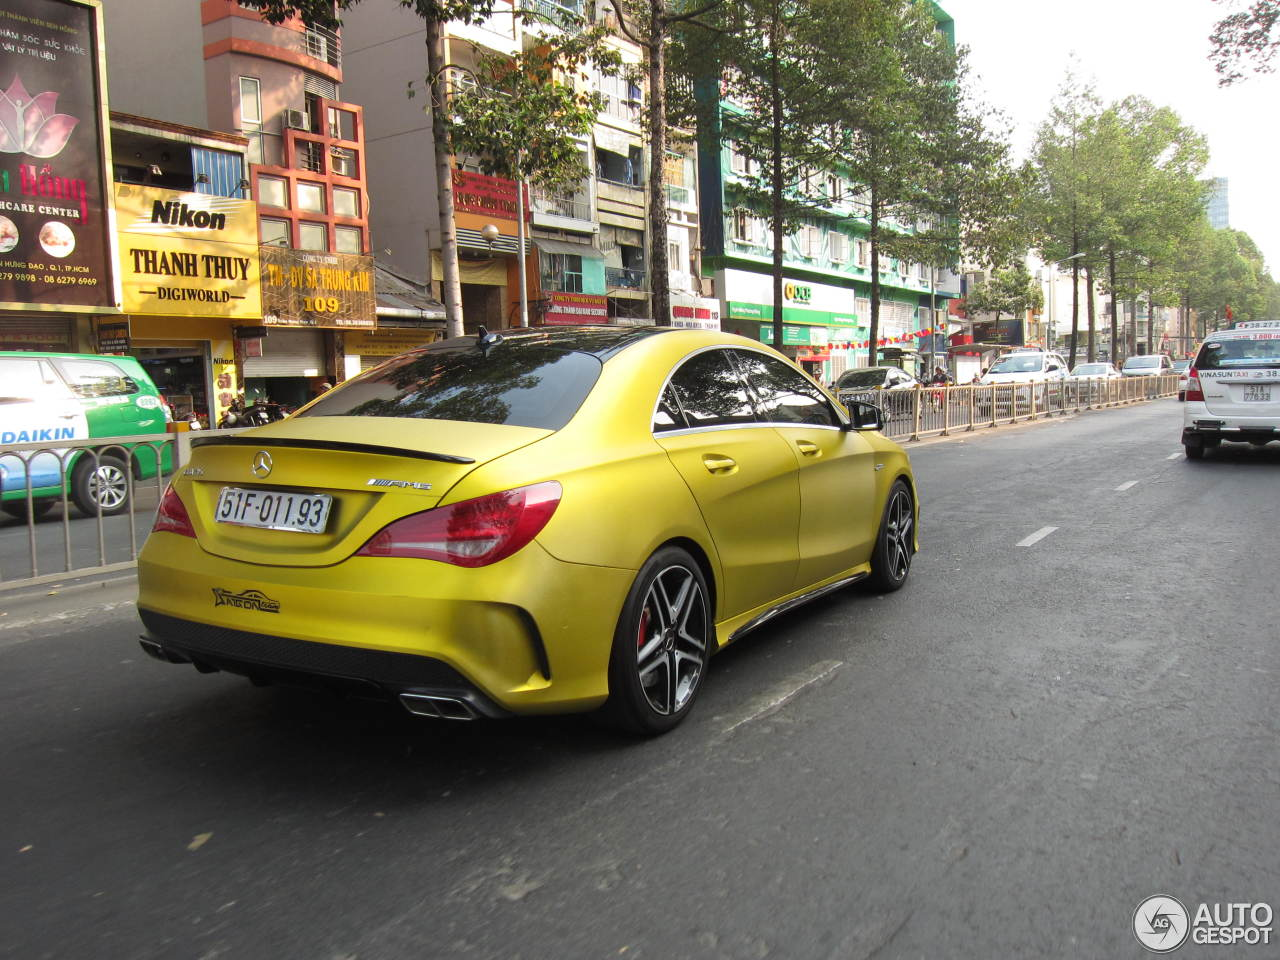 Mercedes Benz Cla 45 Amg C117 1 June 2016 Autogespot